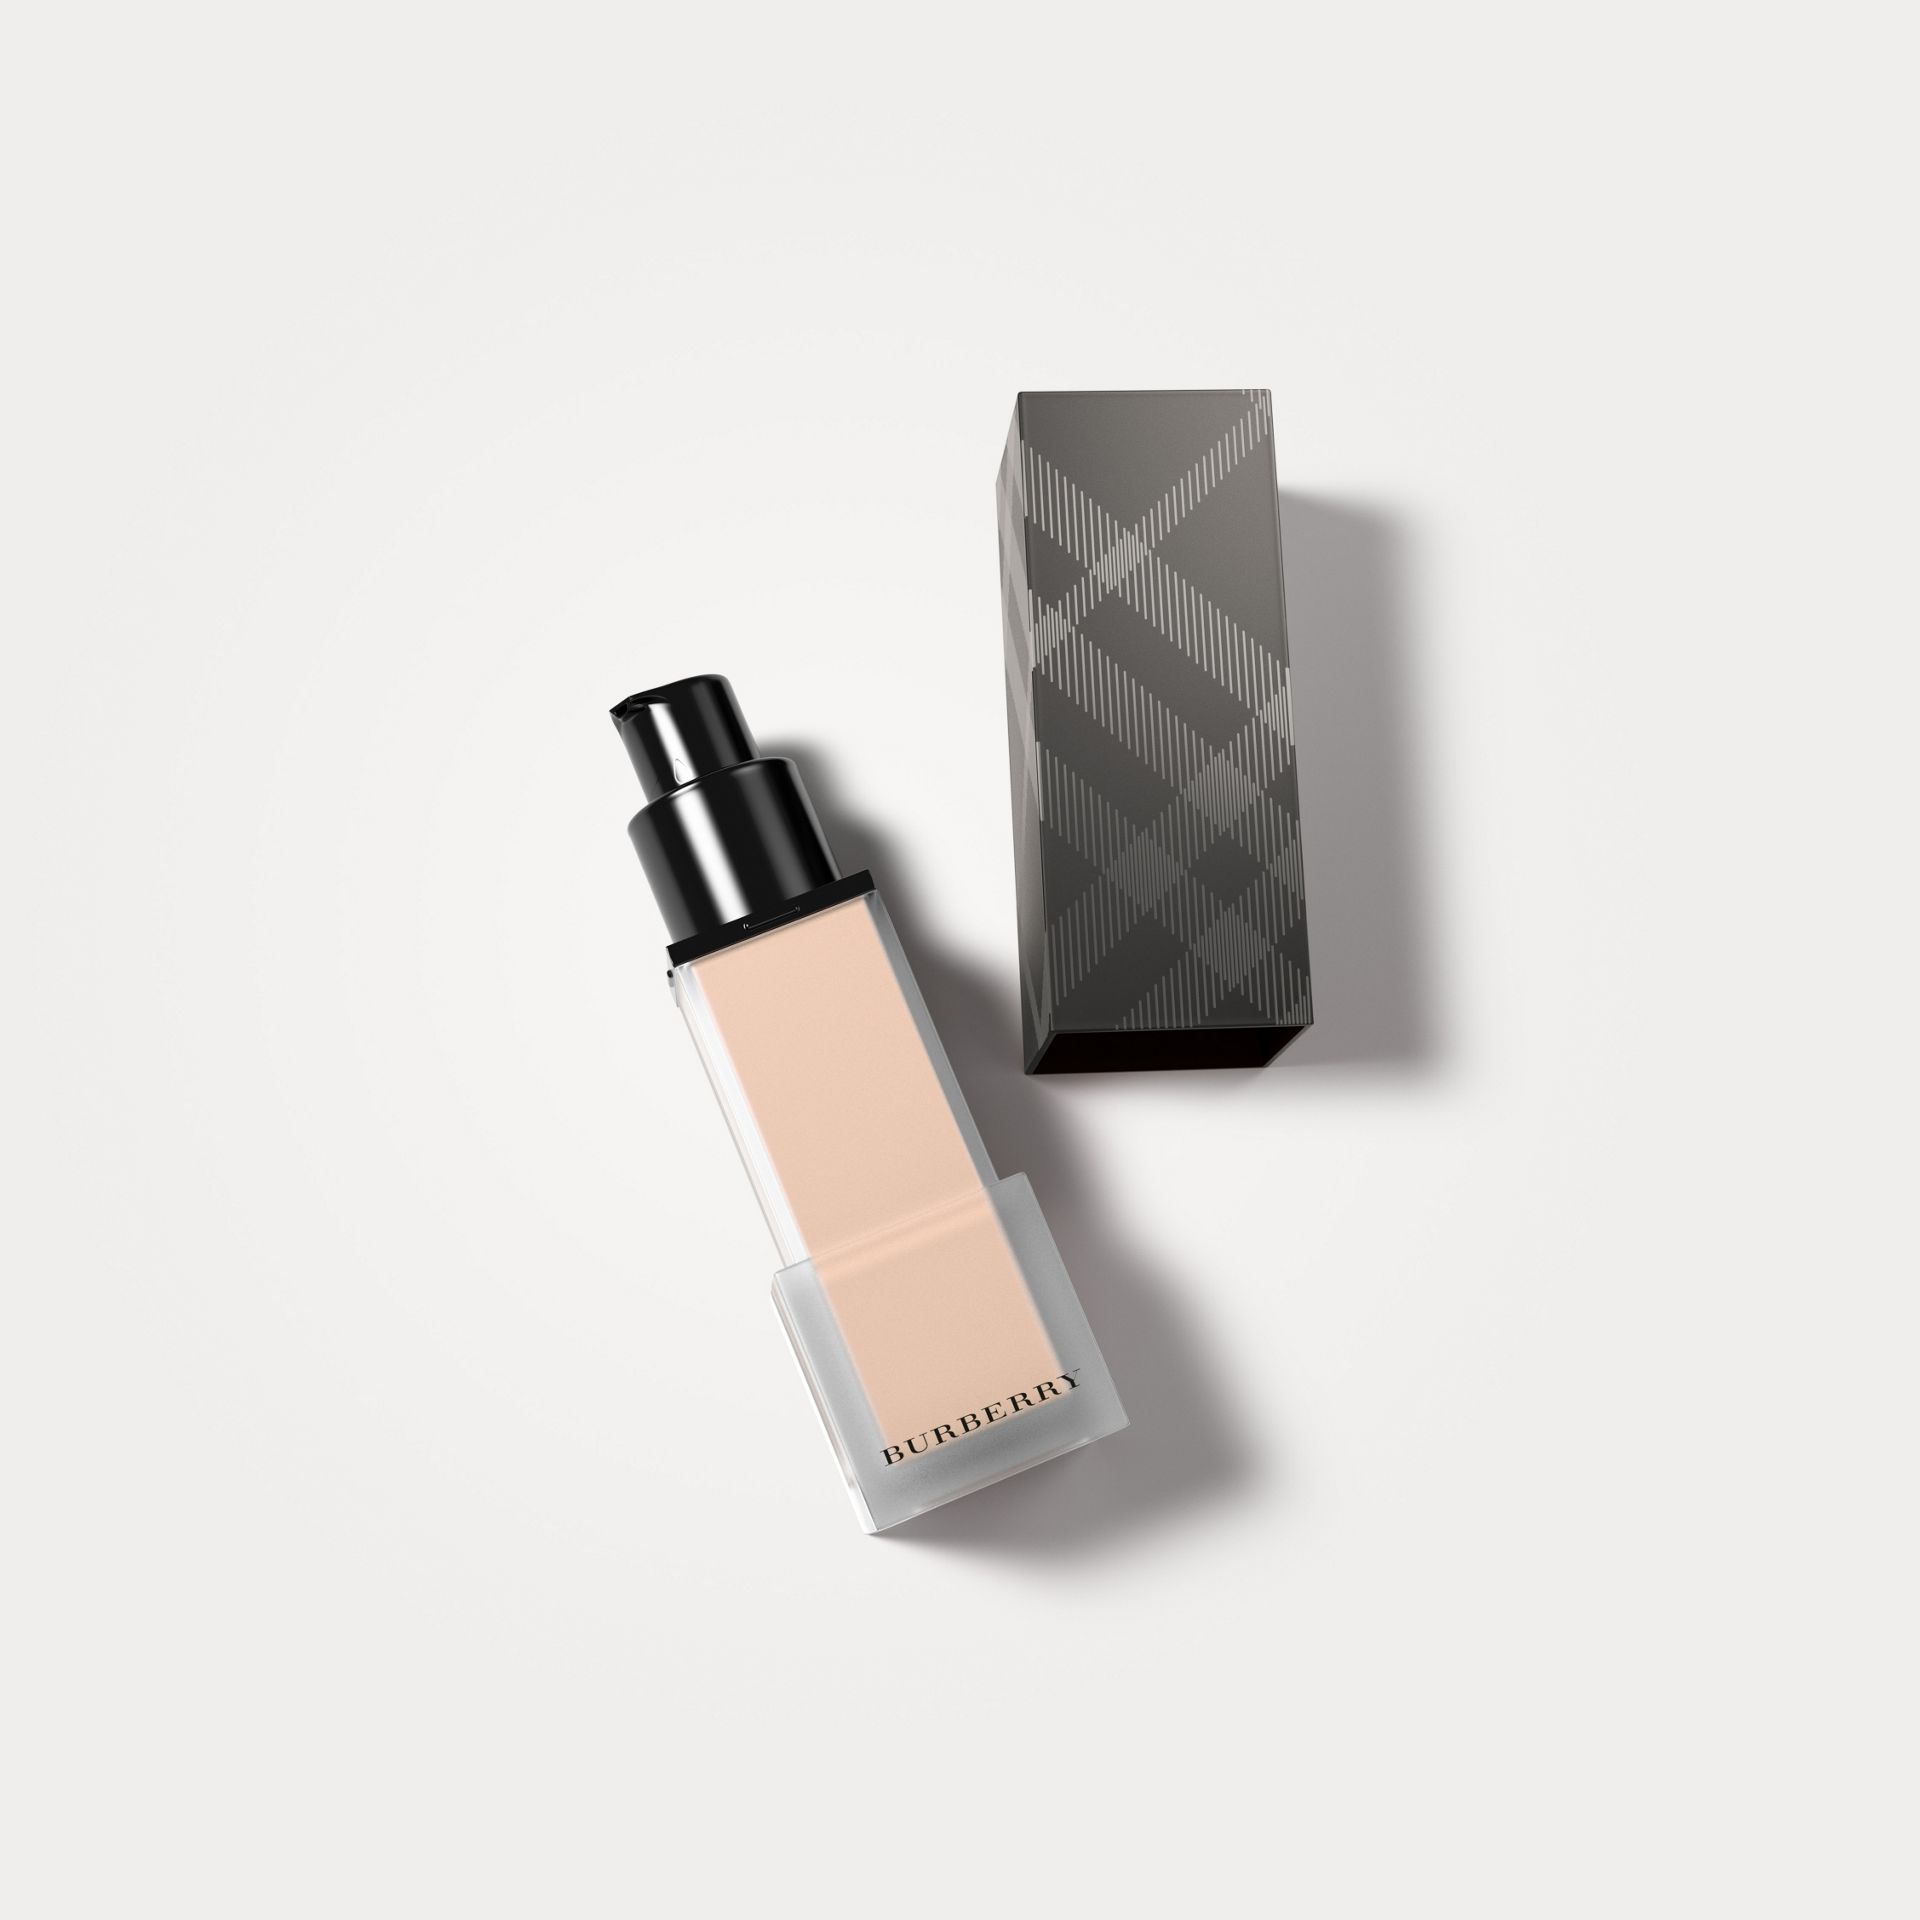 Porcelain 11 Burberry Cashmere SPF 20 – Porcelain No.11 - photo de la galerie 1